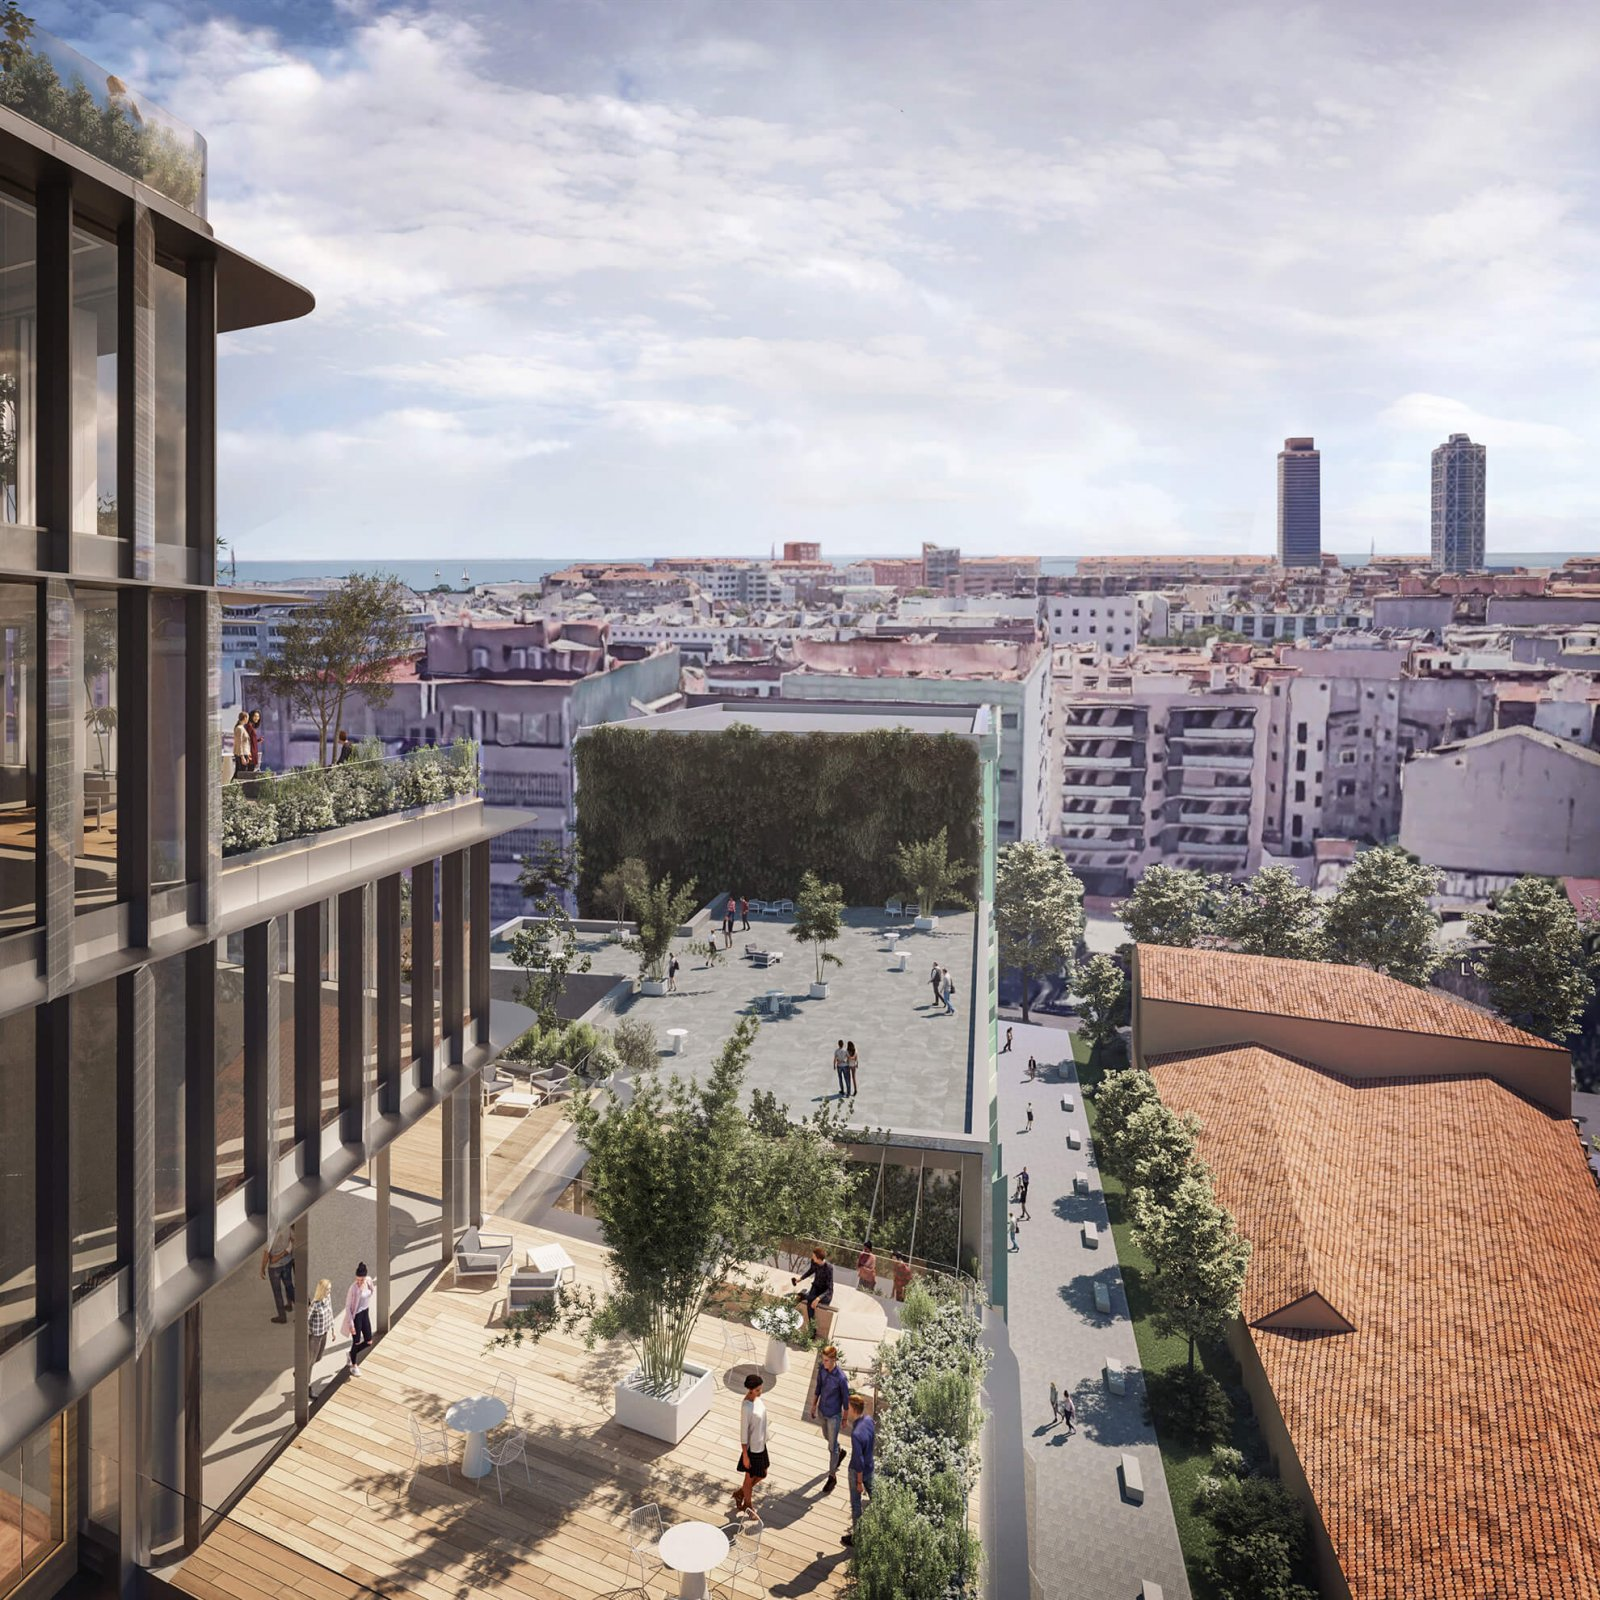 Top view of the terrace, gardens and streets of the Almogàvers 100 building